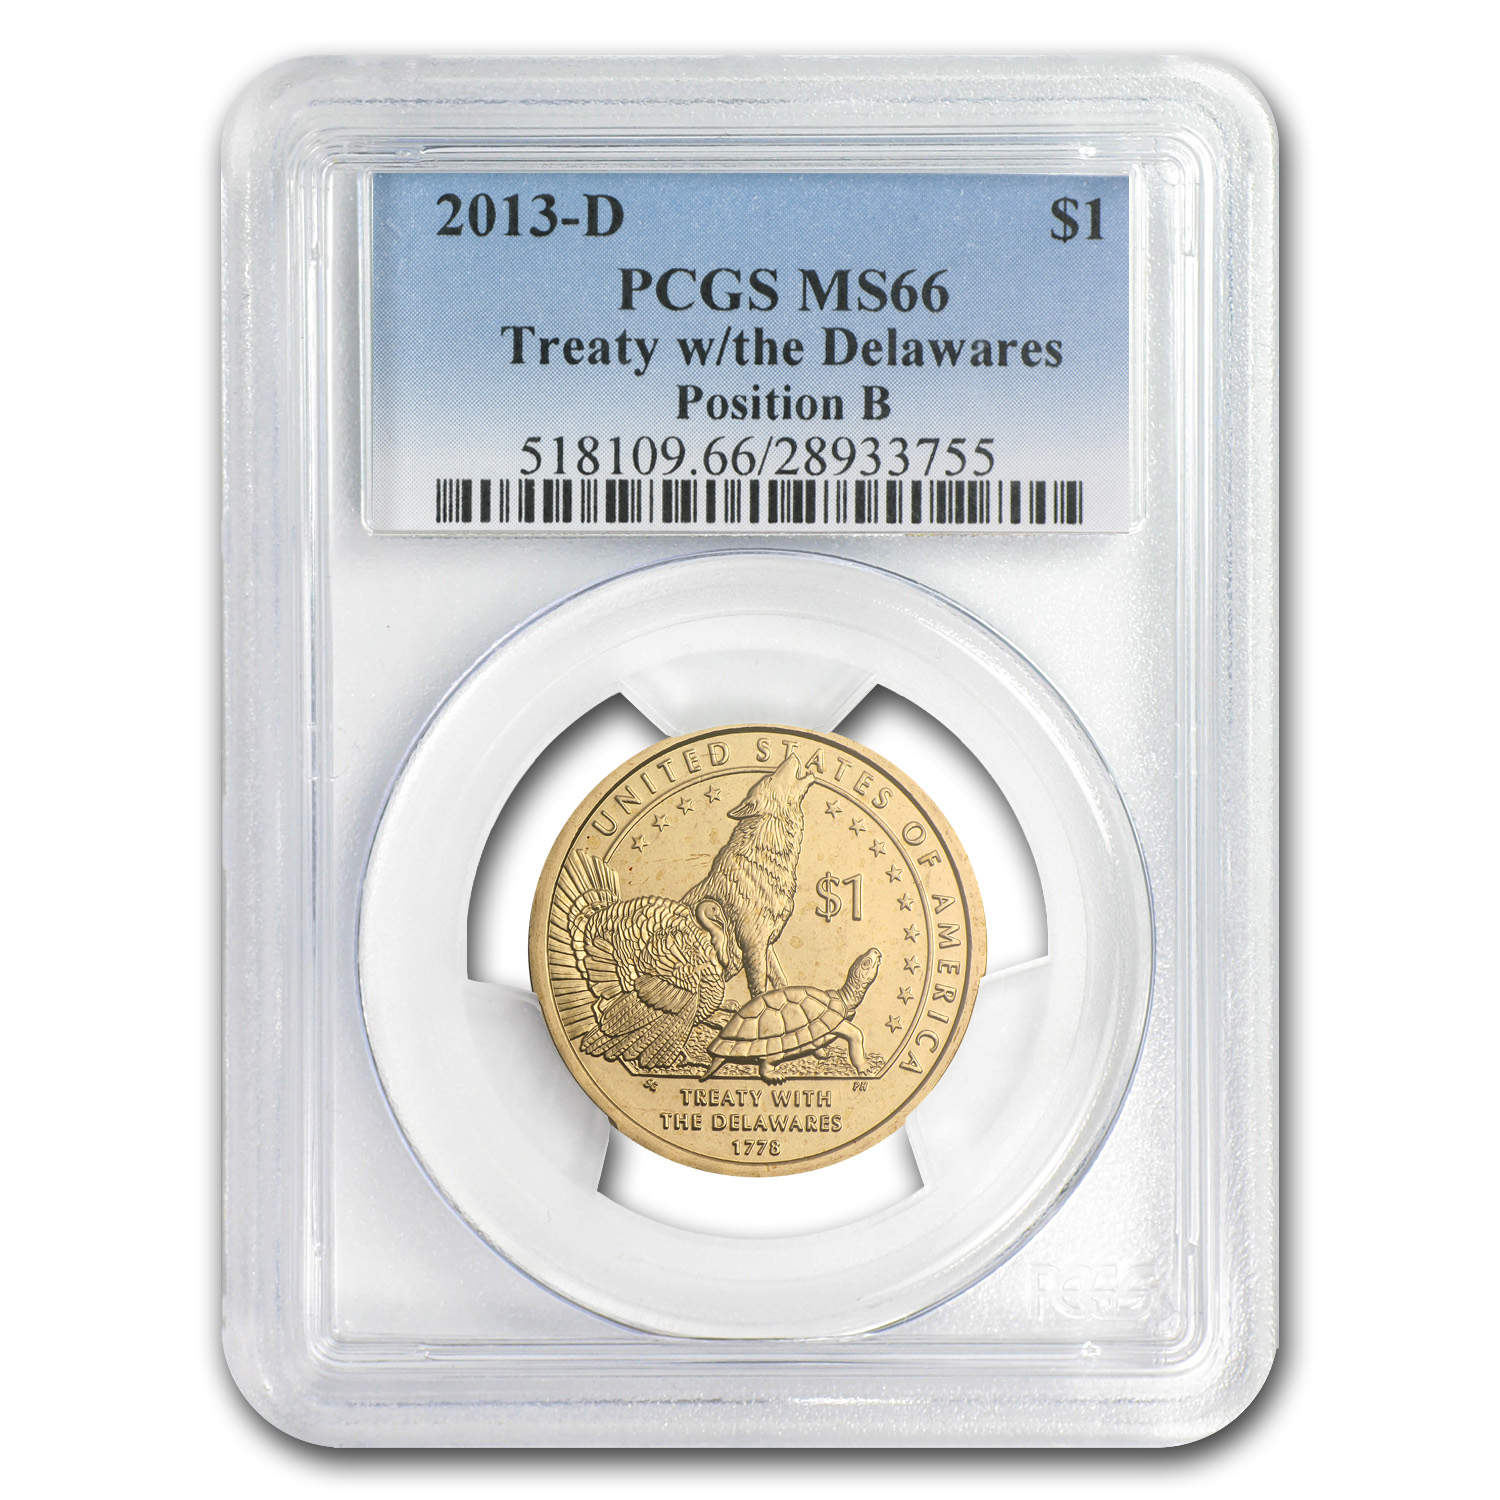 2013-D Native American Sacagawea Dollar Position B MS-66 PCGS